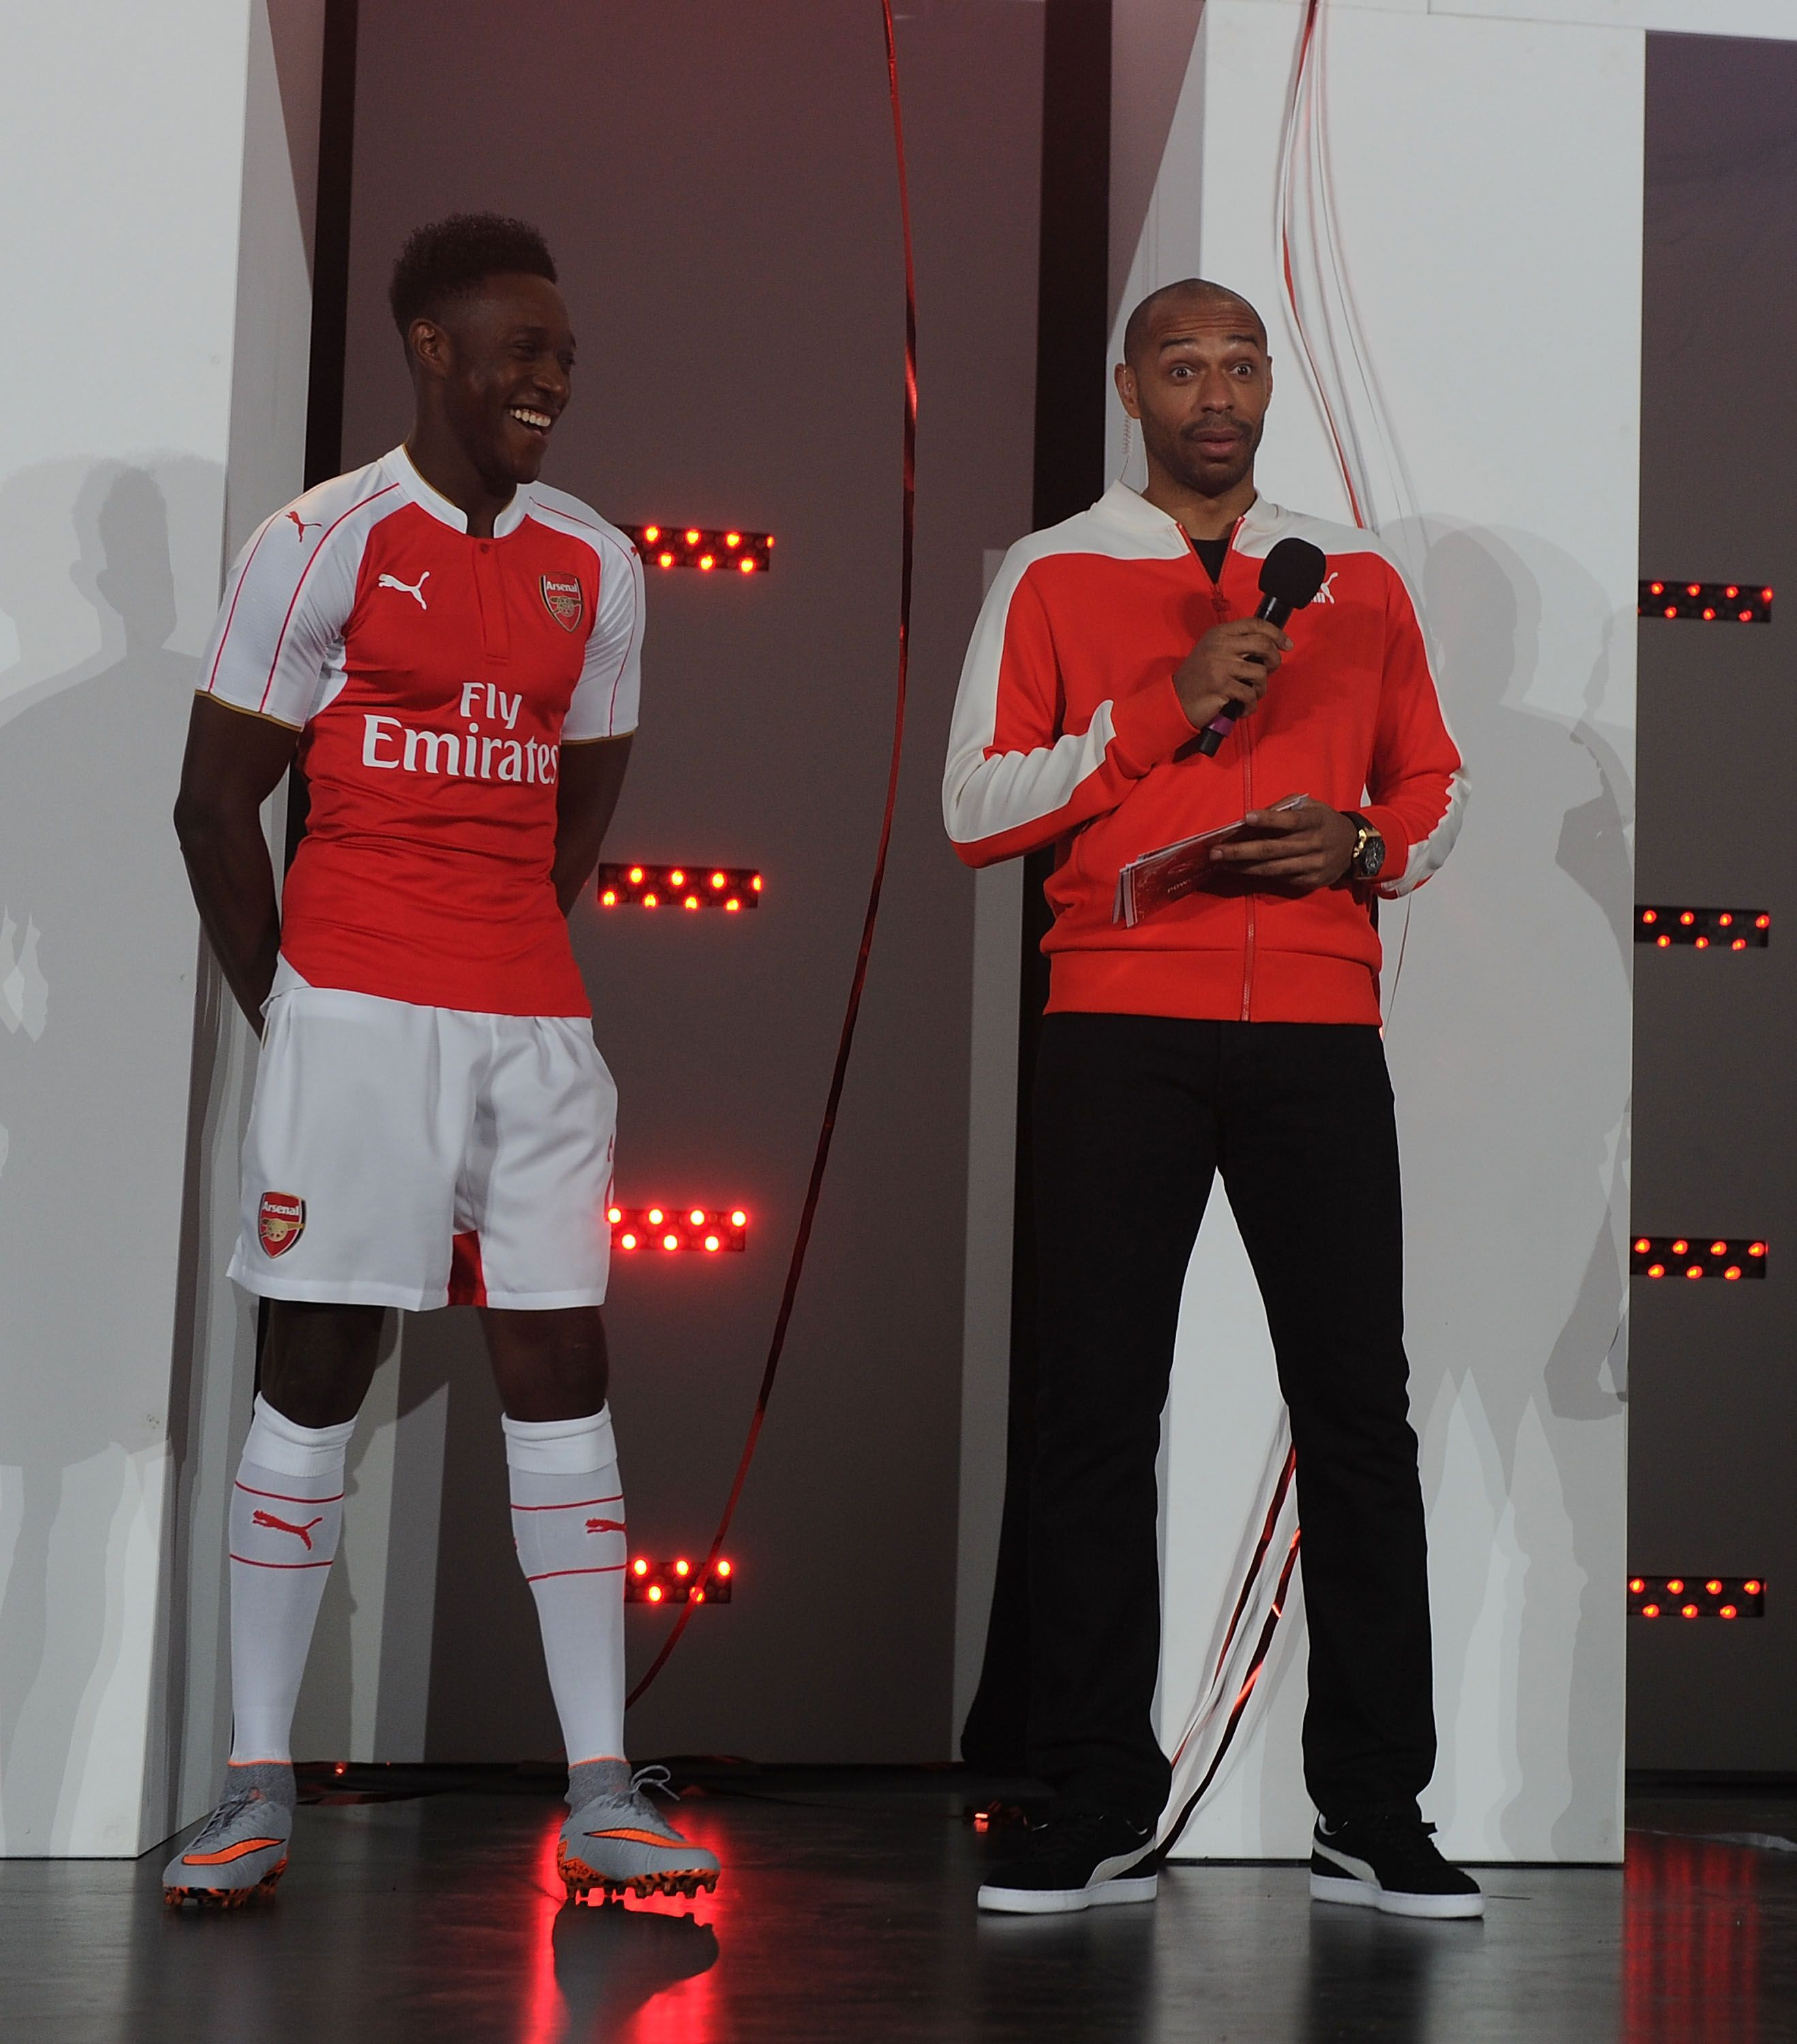 104a57a4902 Thierry Henry interviews Danny Welbeck at the launch of Arsenal s home kit  for season 2015 16 at Emirates Stadium on June 15